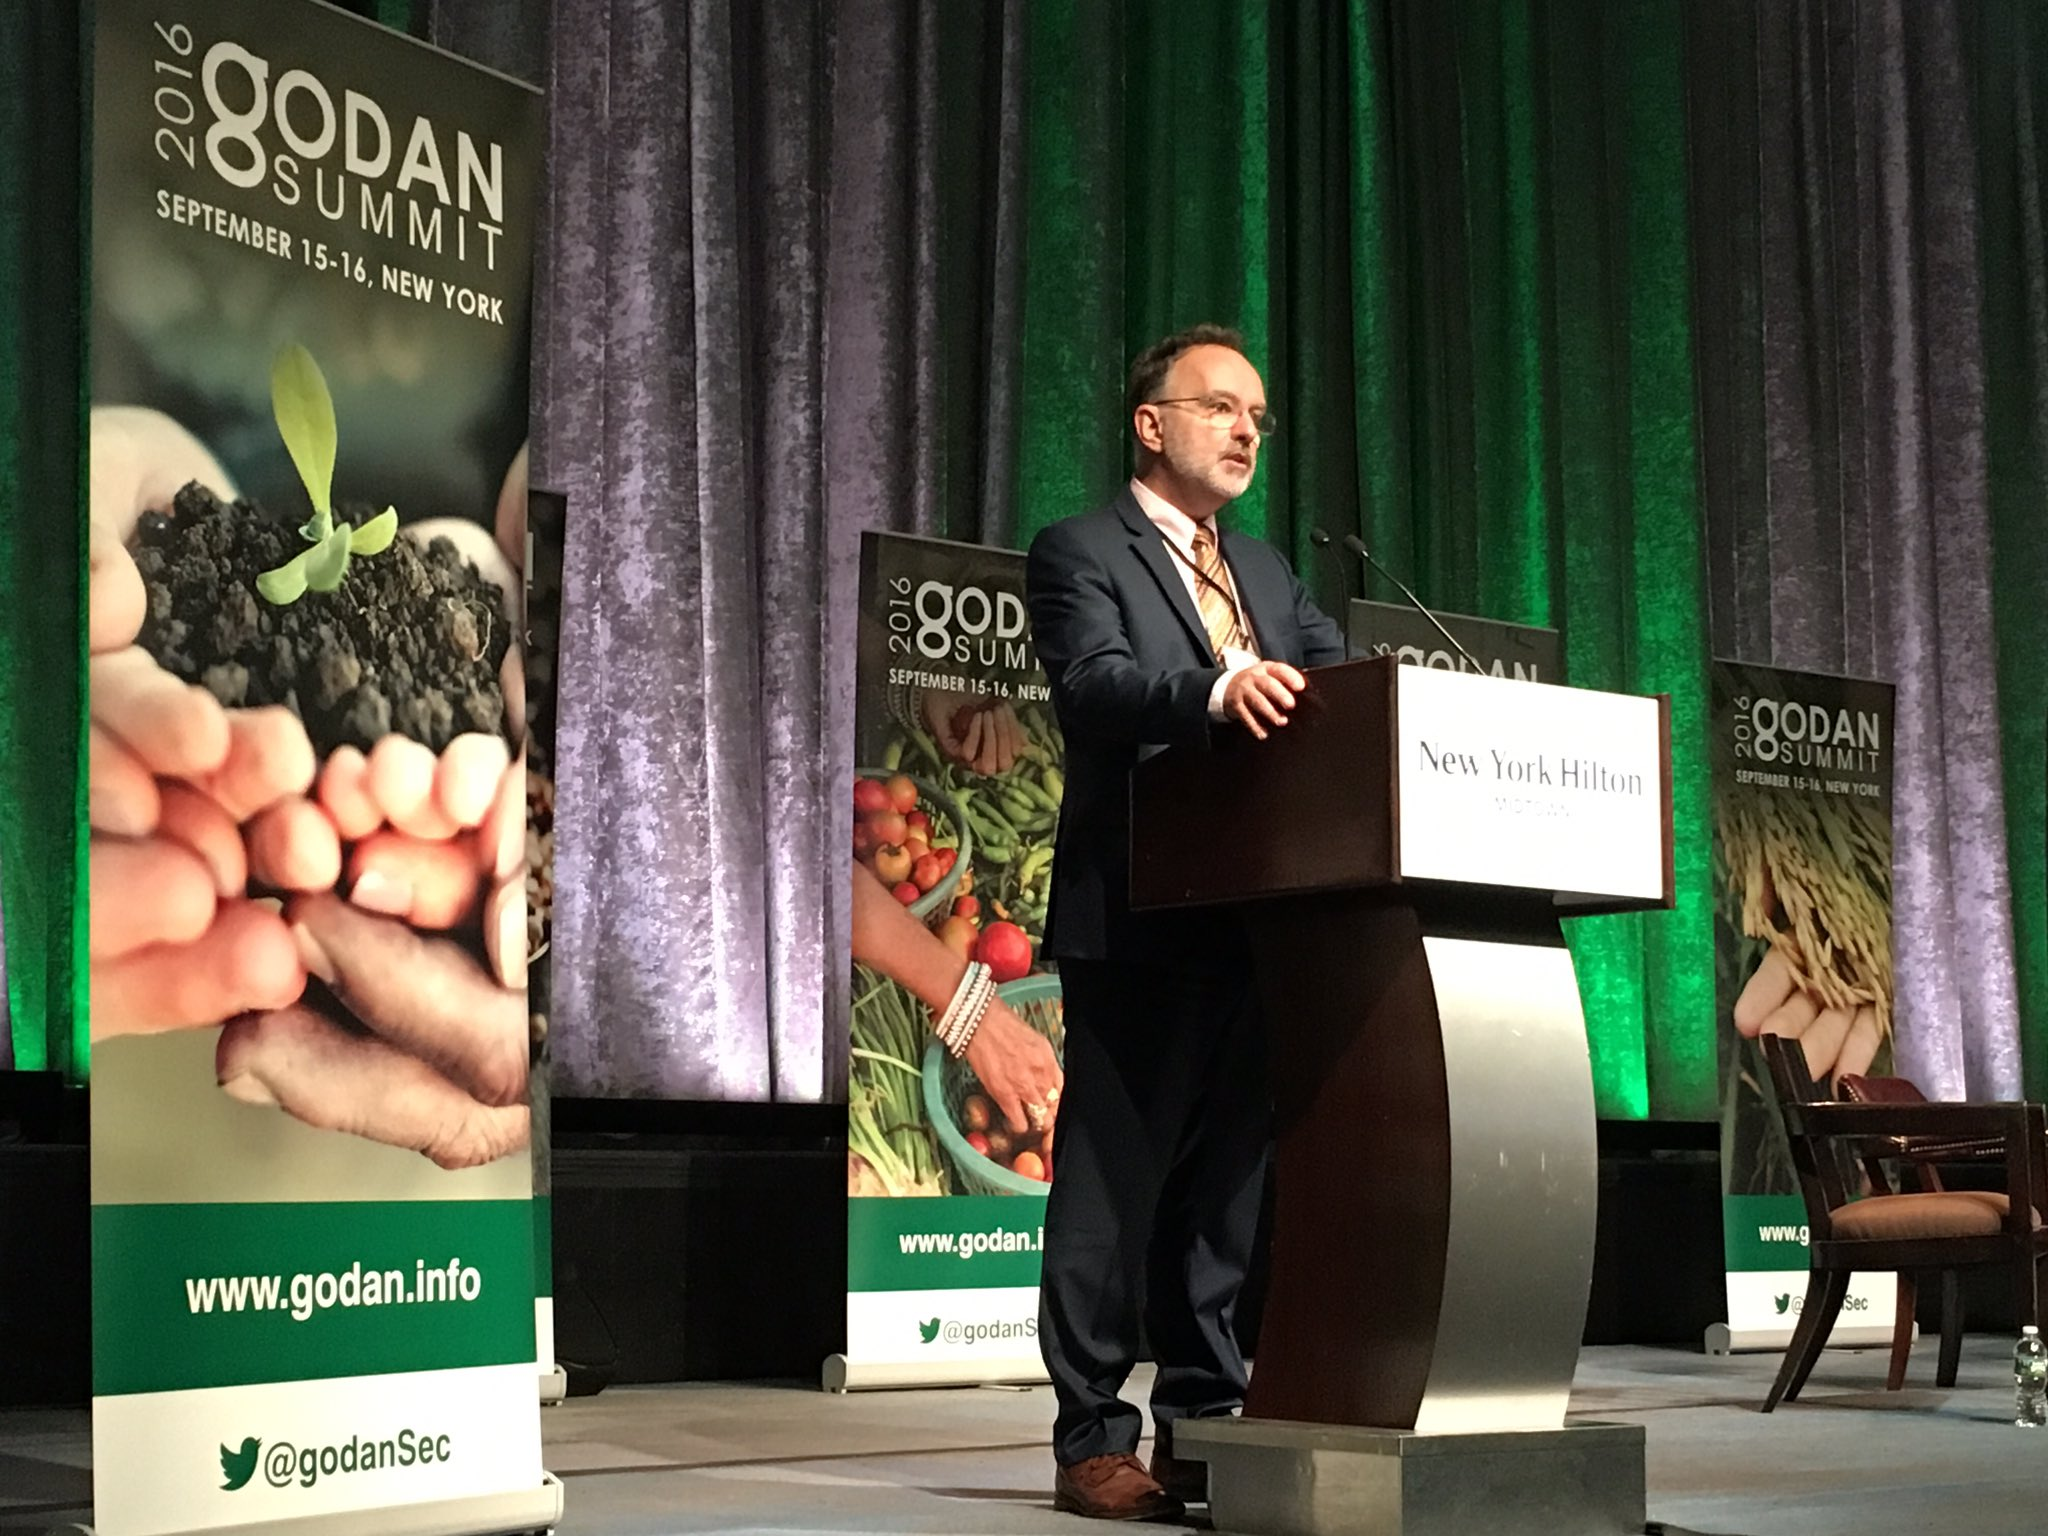 .@godanSec's Executive Director @a_laperriere gives the opening remarks #GODANSummit2016 https://t.co/RUCnLggtaw